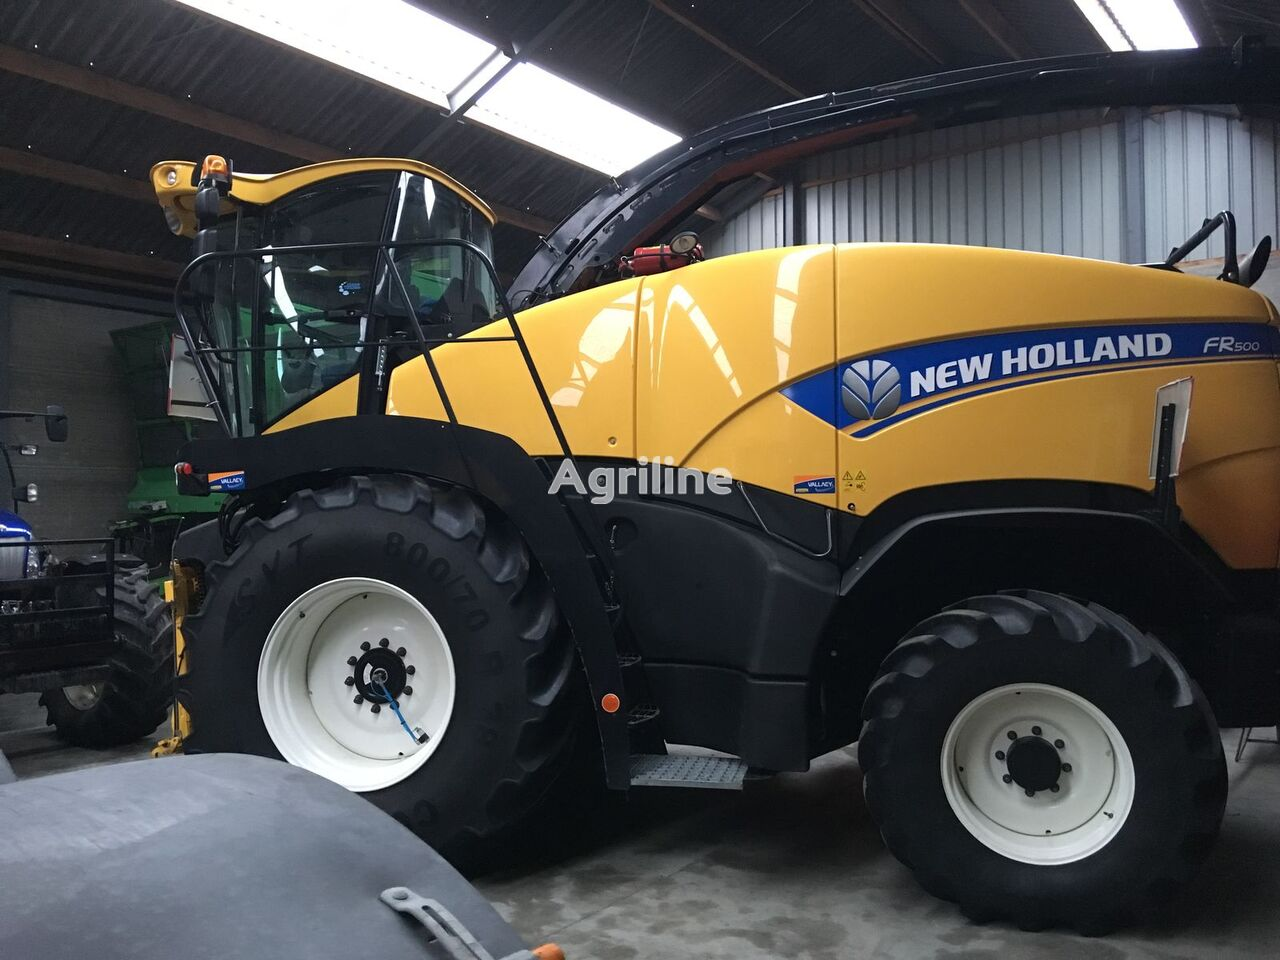 ensileuse automotrice NEW HOLLAND FR500